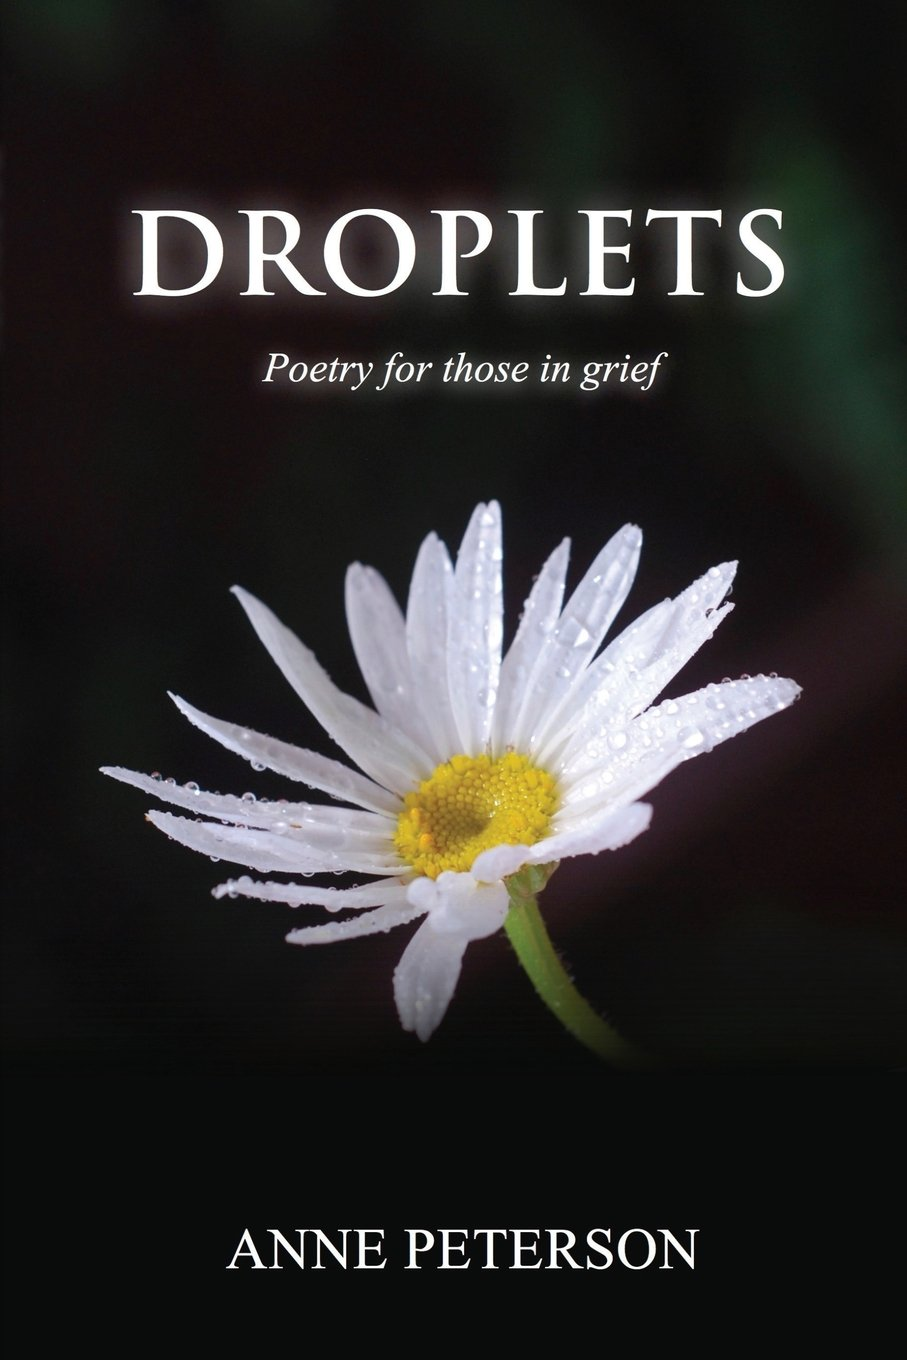 Droplets: Poetry for those in grief